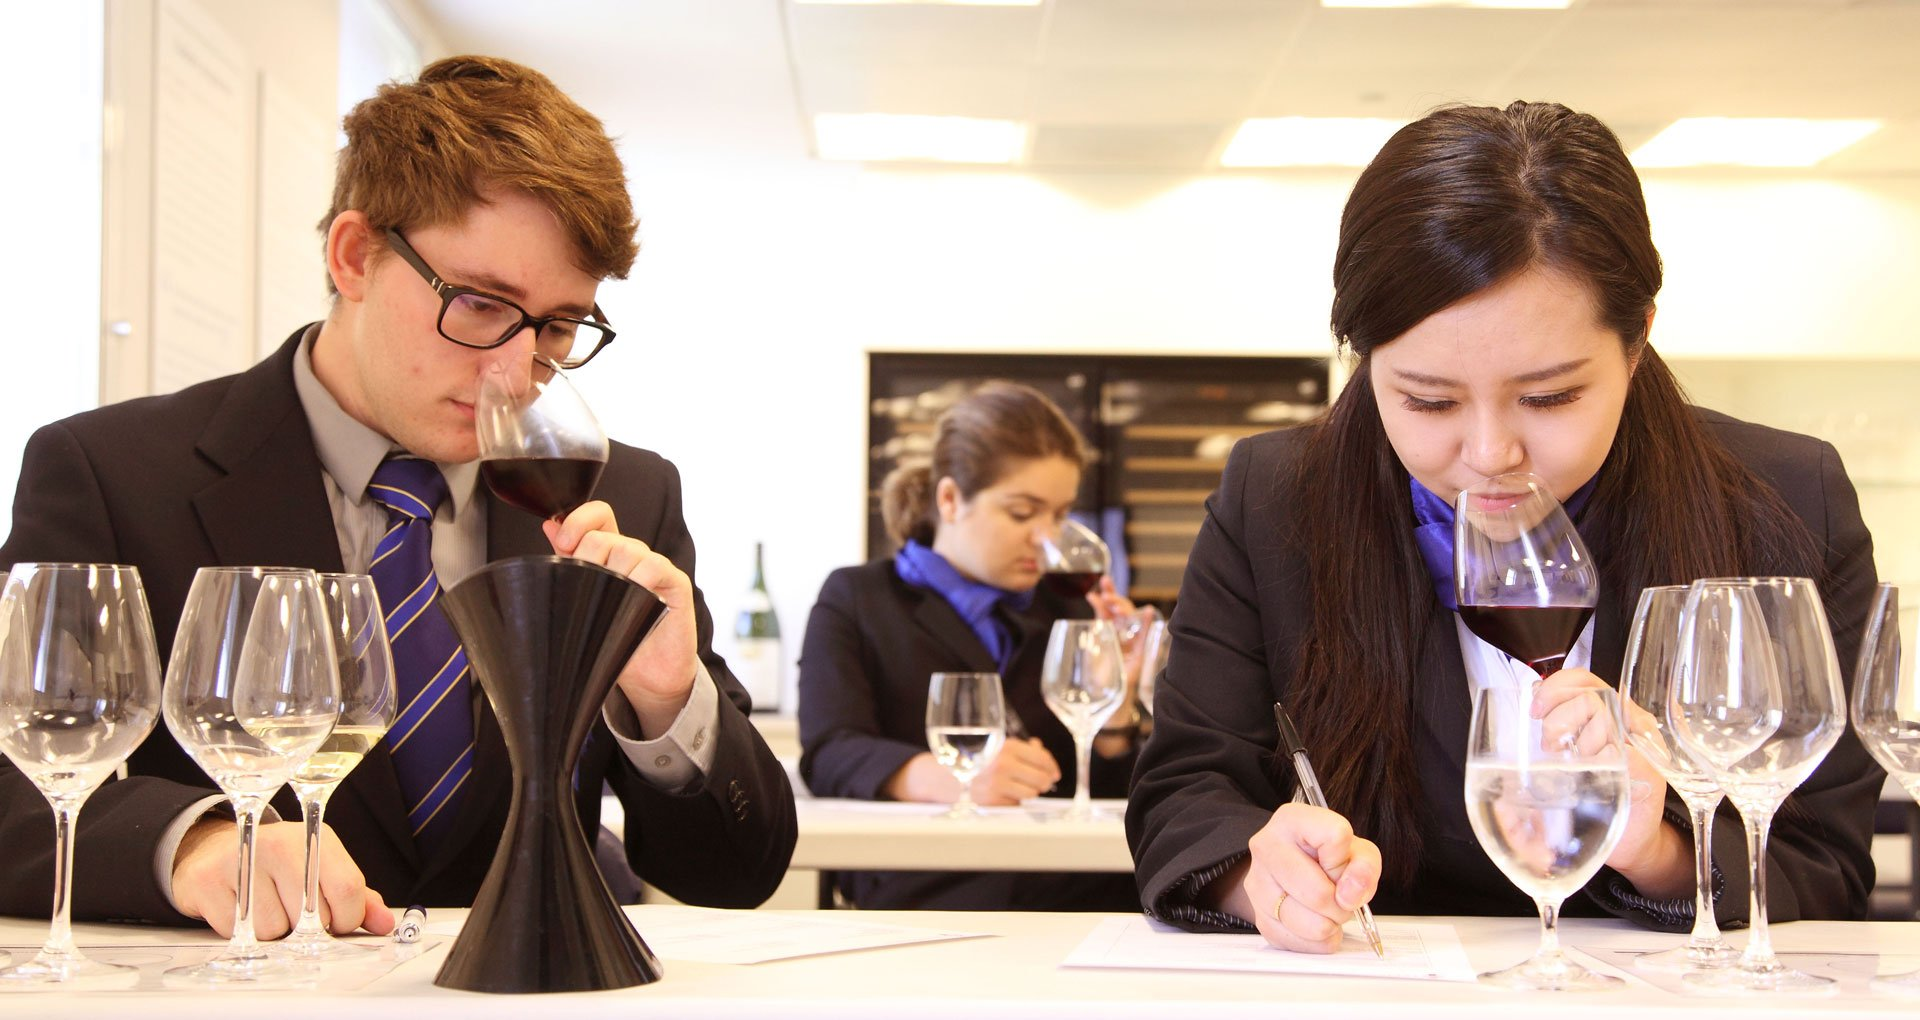 WSET and Le Cordon Bleu Wine Diploma: What Are the Differences?